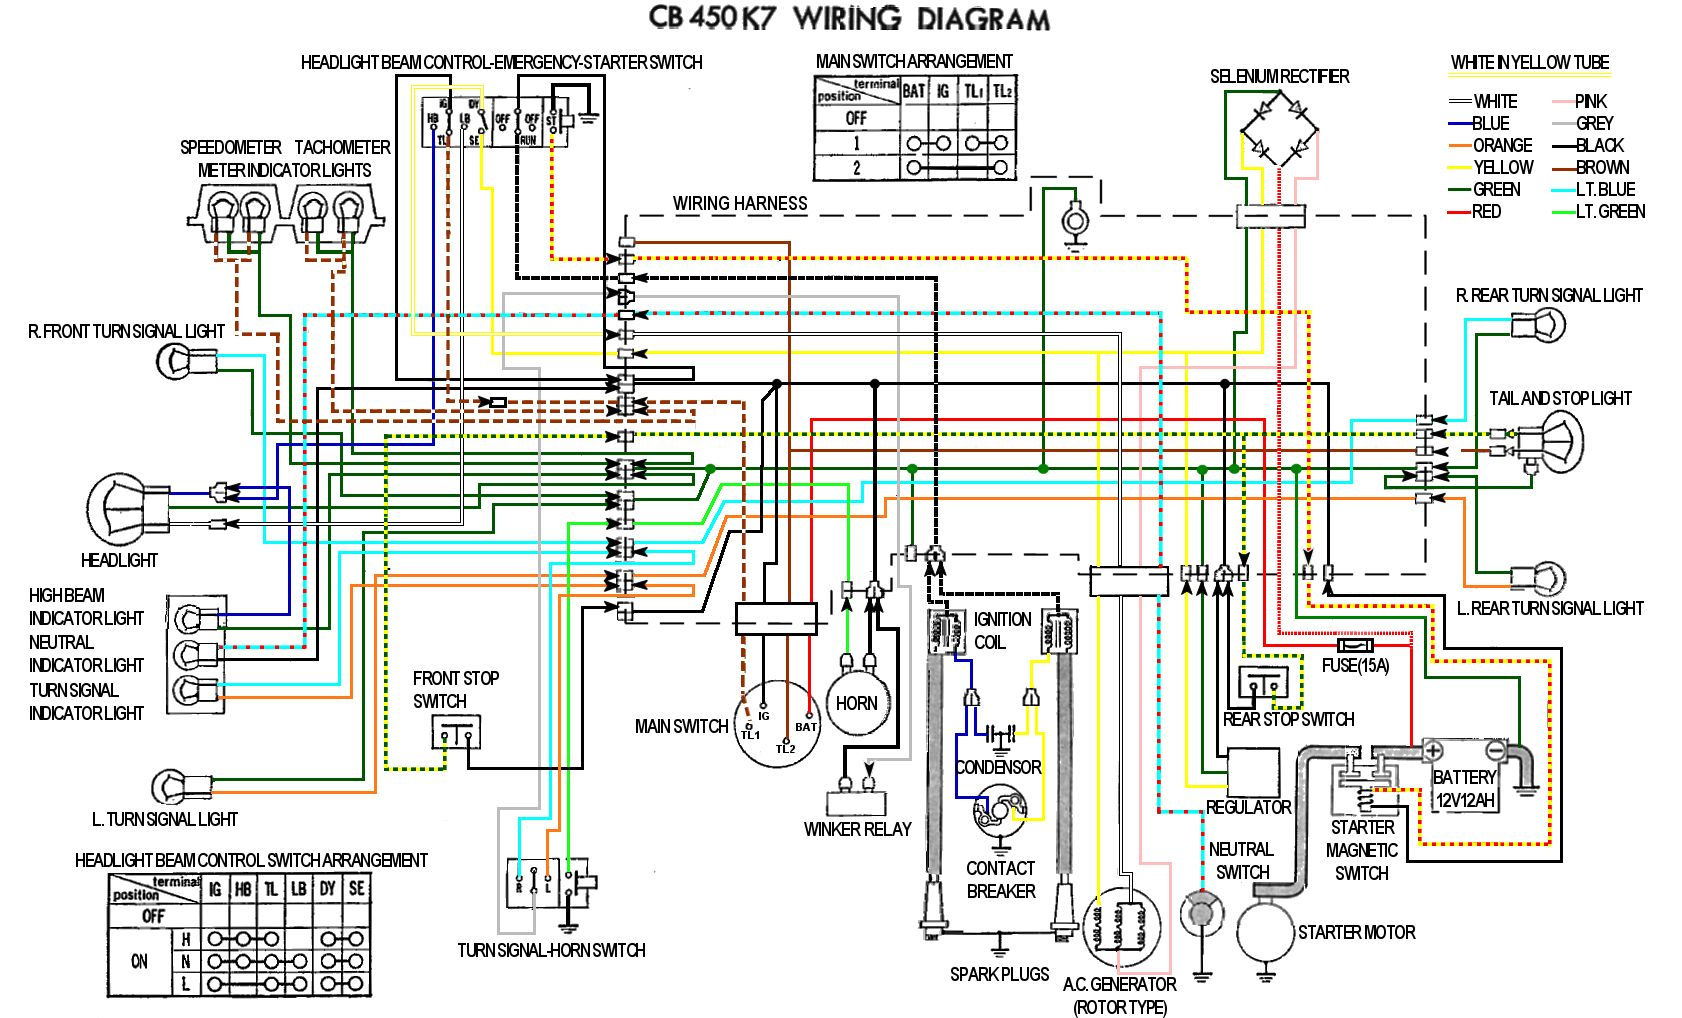 hight resolution of wiring diagram manual wiring diagram blogs nissan altima wiring harness manual service manual wiring diagram wiring